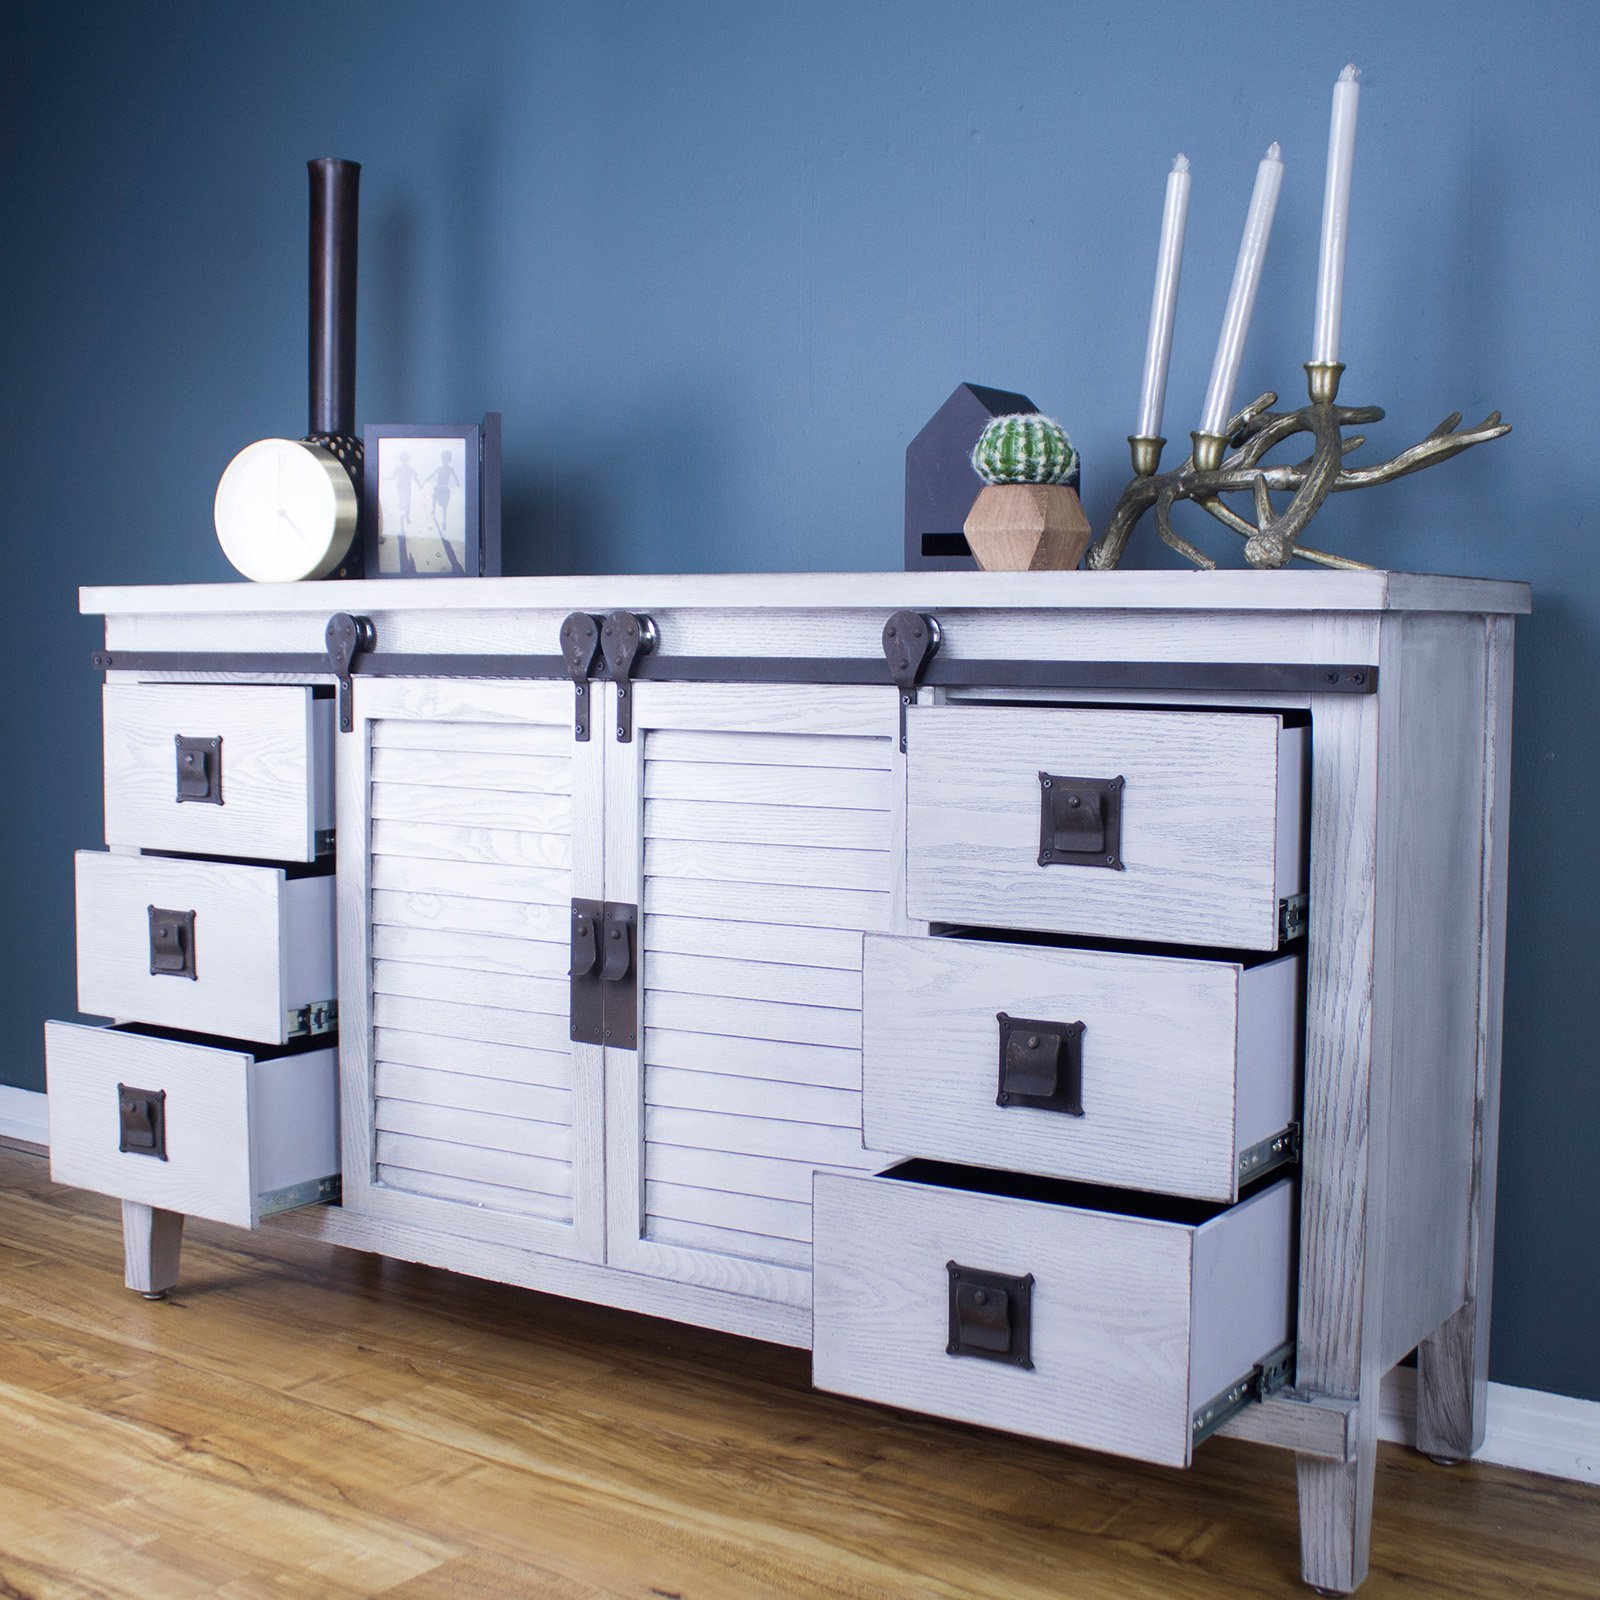 Heather Ann Creations Southport Collection 2 Door 6 Drawer Buffet Cabinet for Industrial Style 3-Drawer Buffets (Image 15 of 30)